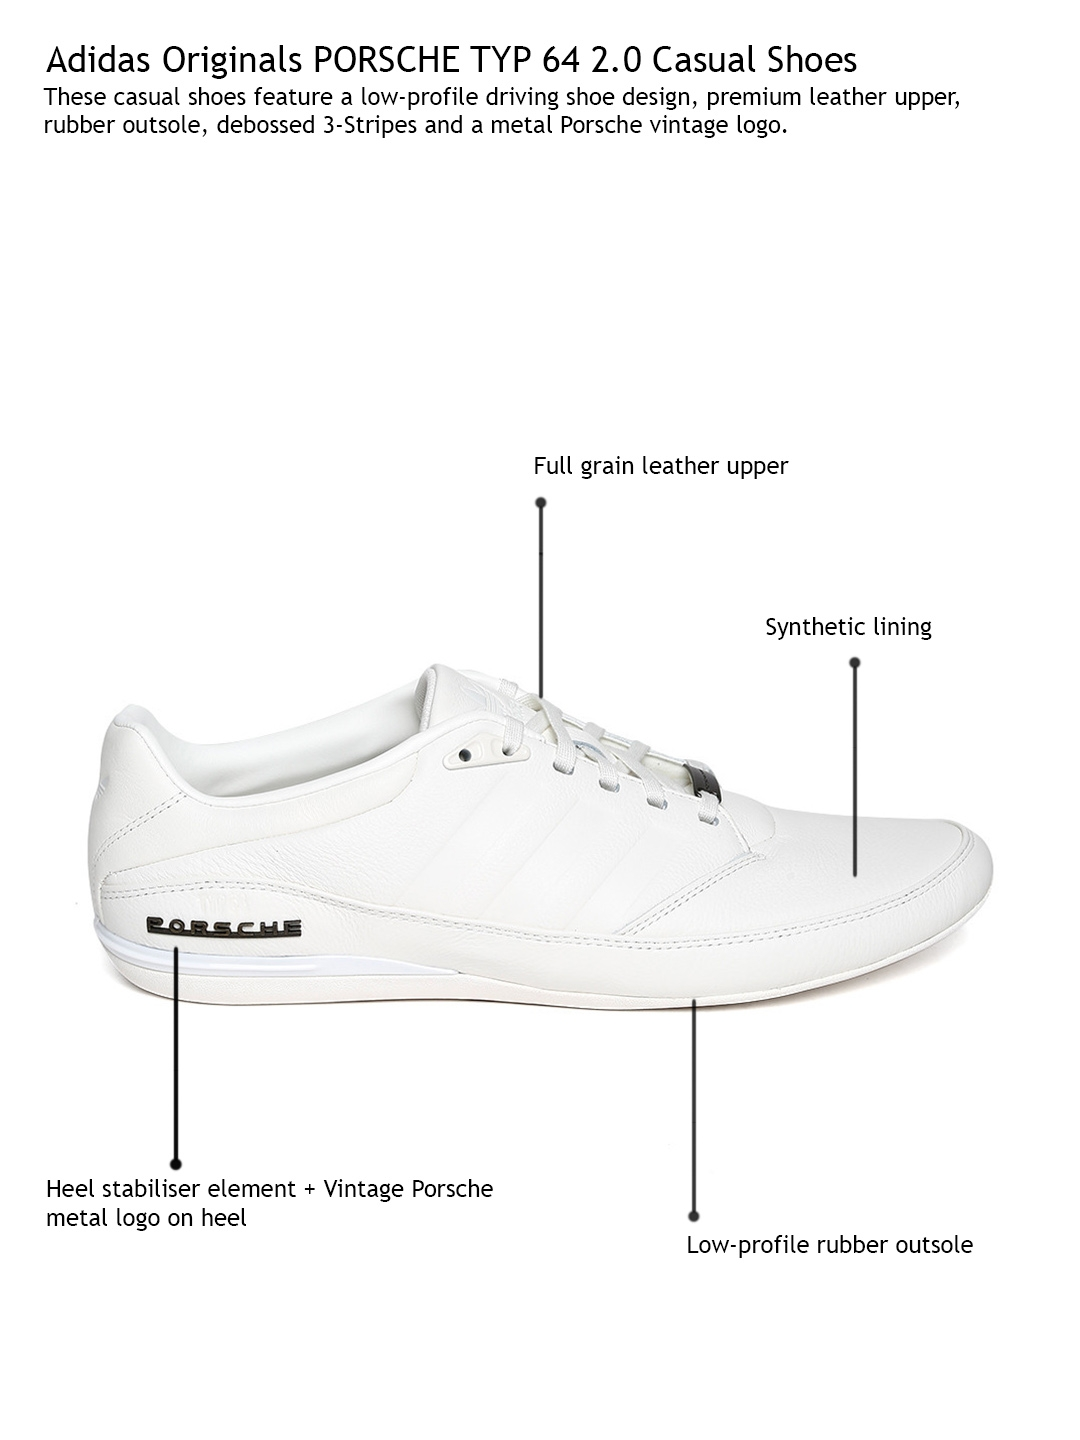 online store 6ad0d 2ca4f Buy ADIDAS Originals Men White Porsche TYP 64 2.0 Leather Casual ...